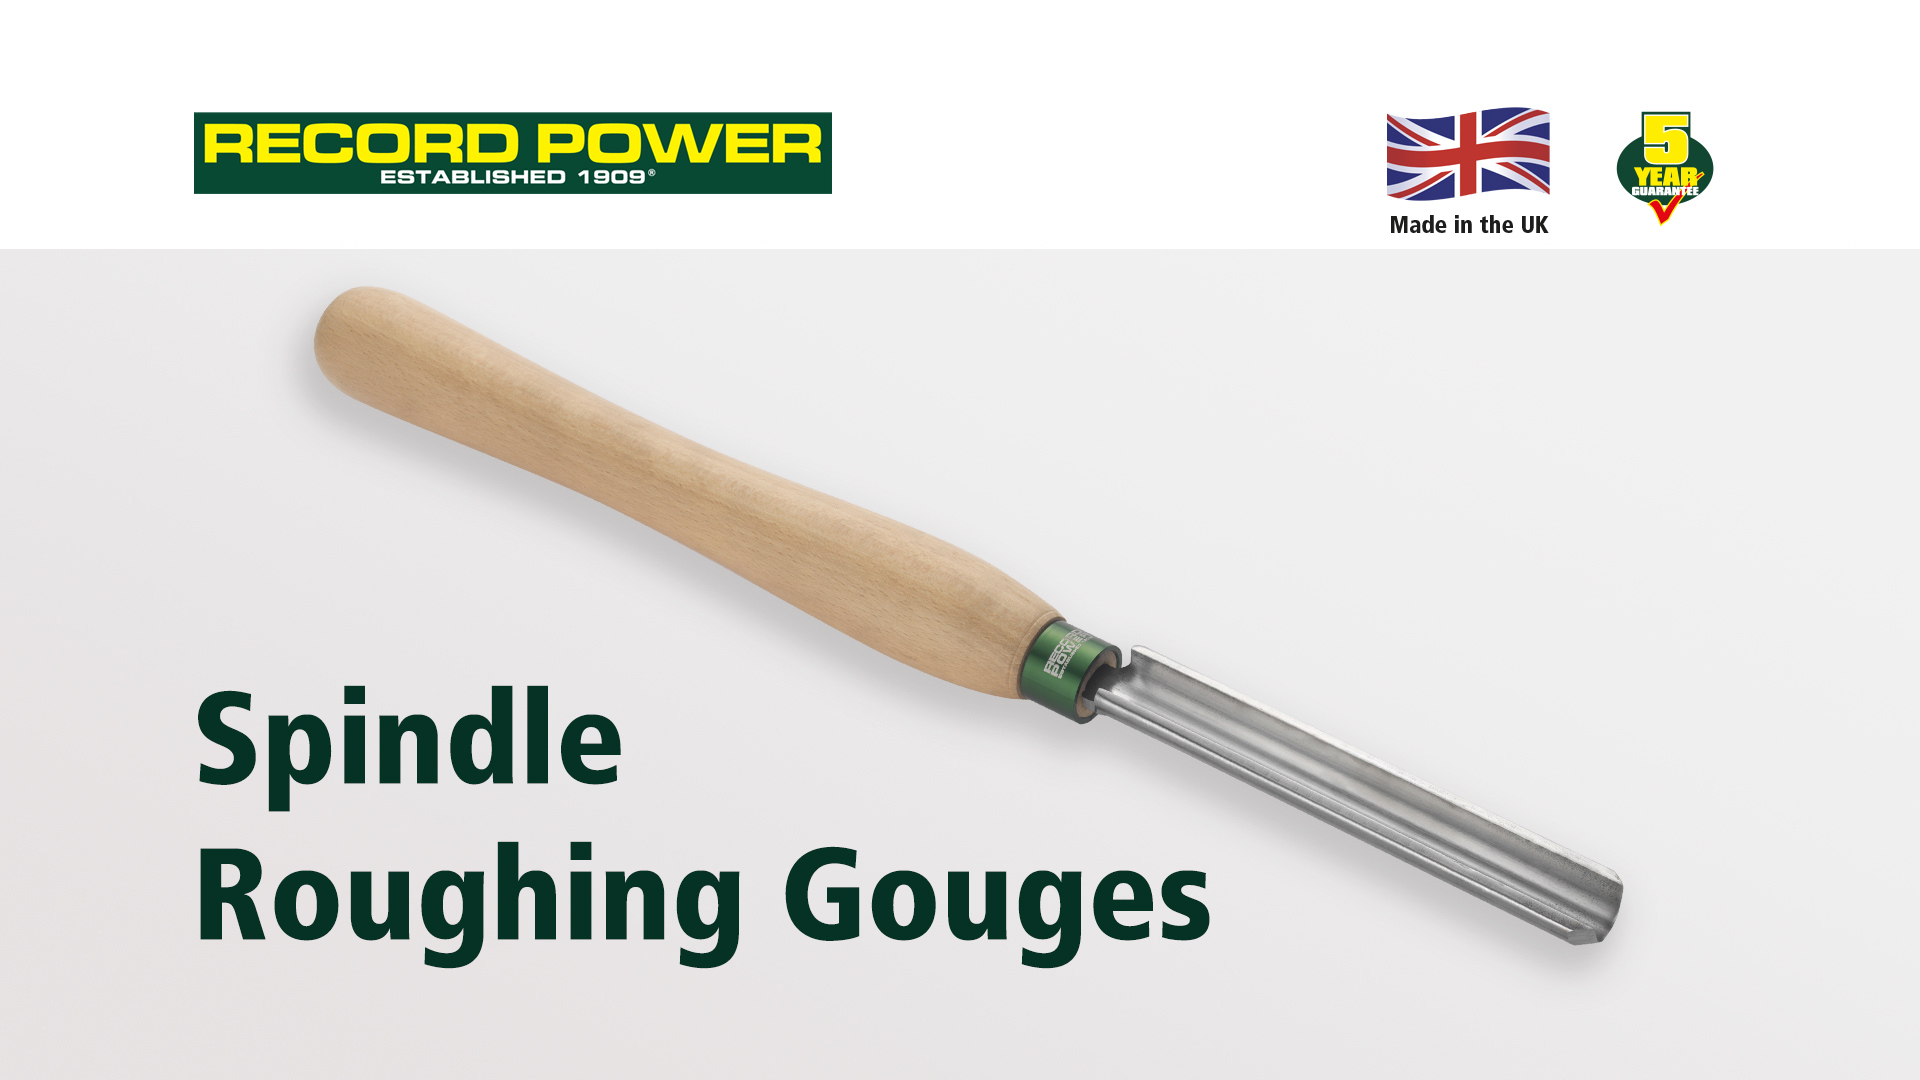 Spindle Roughing Gouges